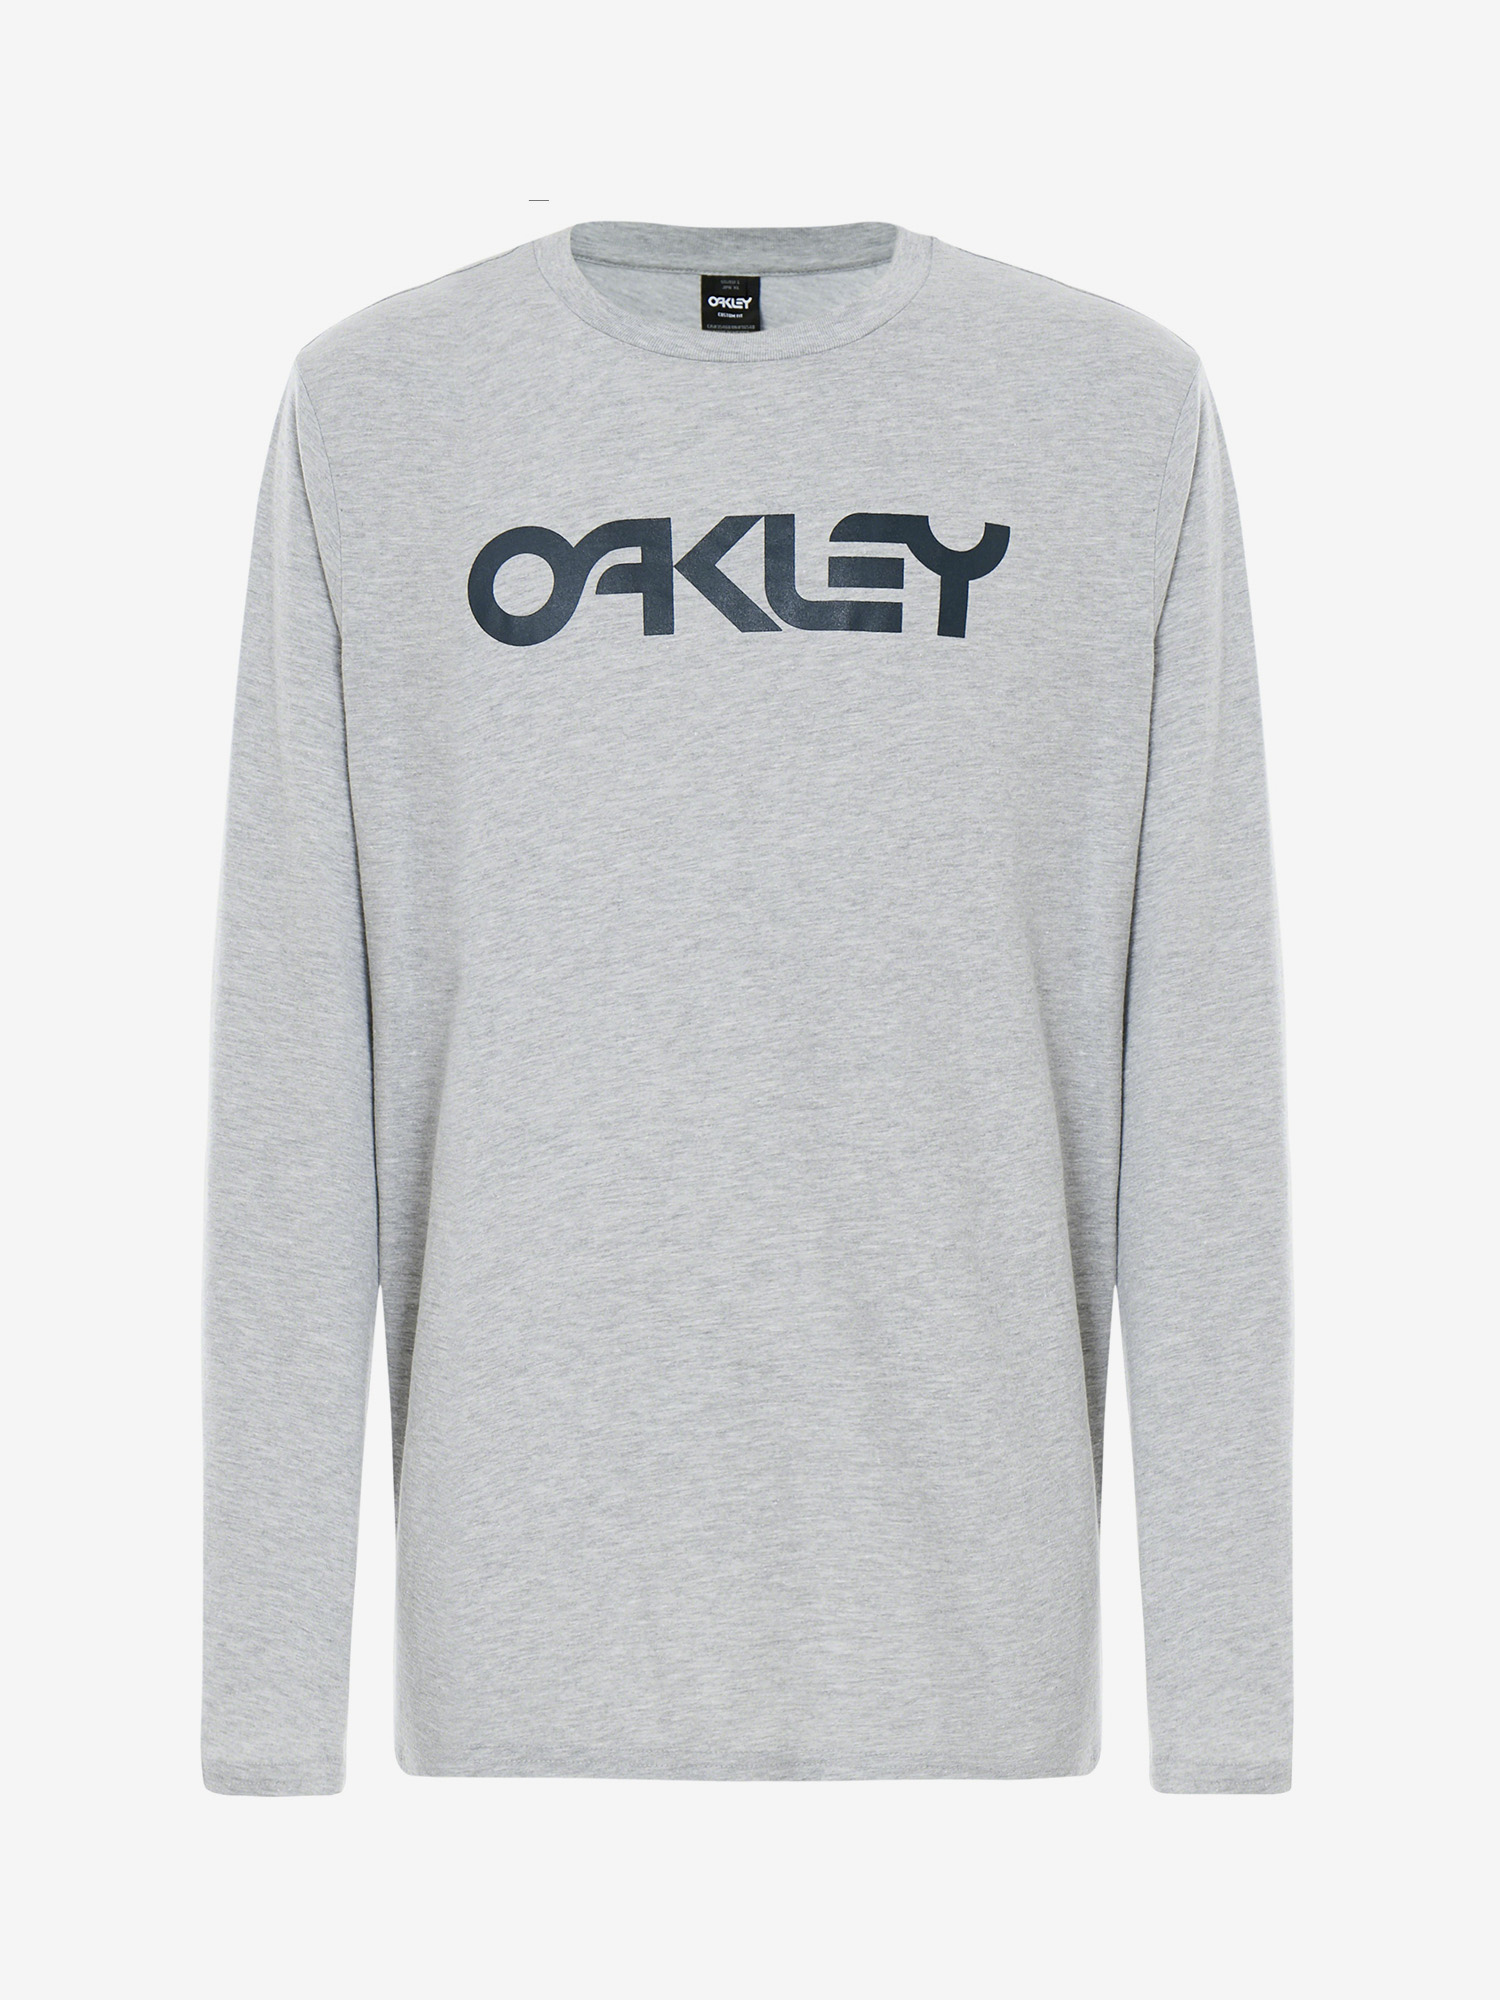 Tričko Oakley Mark Ii L/S Tee Granite Heather Šedá